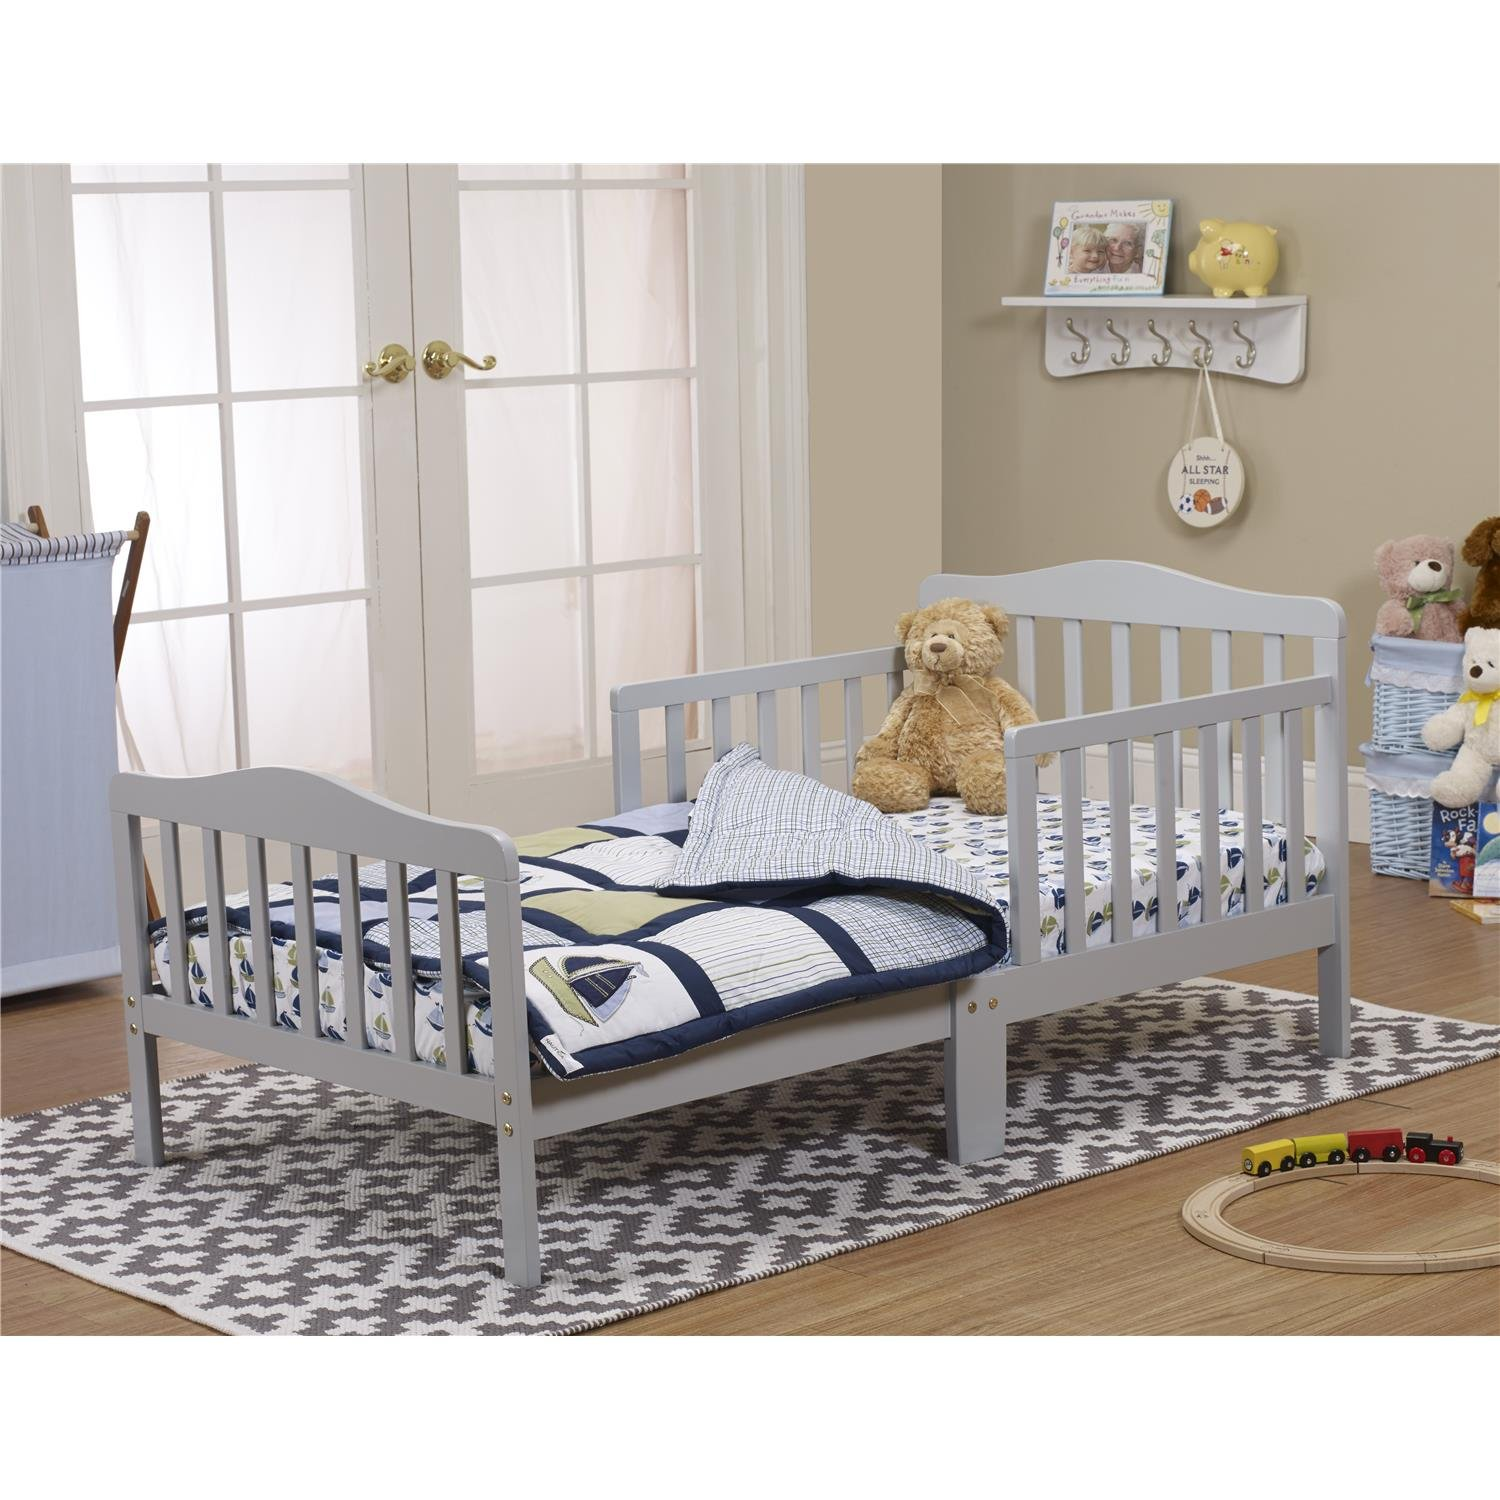 storkcraft best bed toddler buy canada beds white mission ridge category ca en